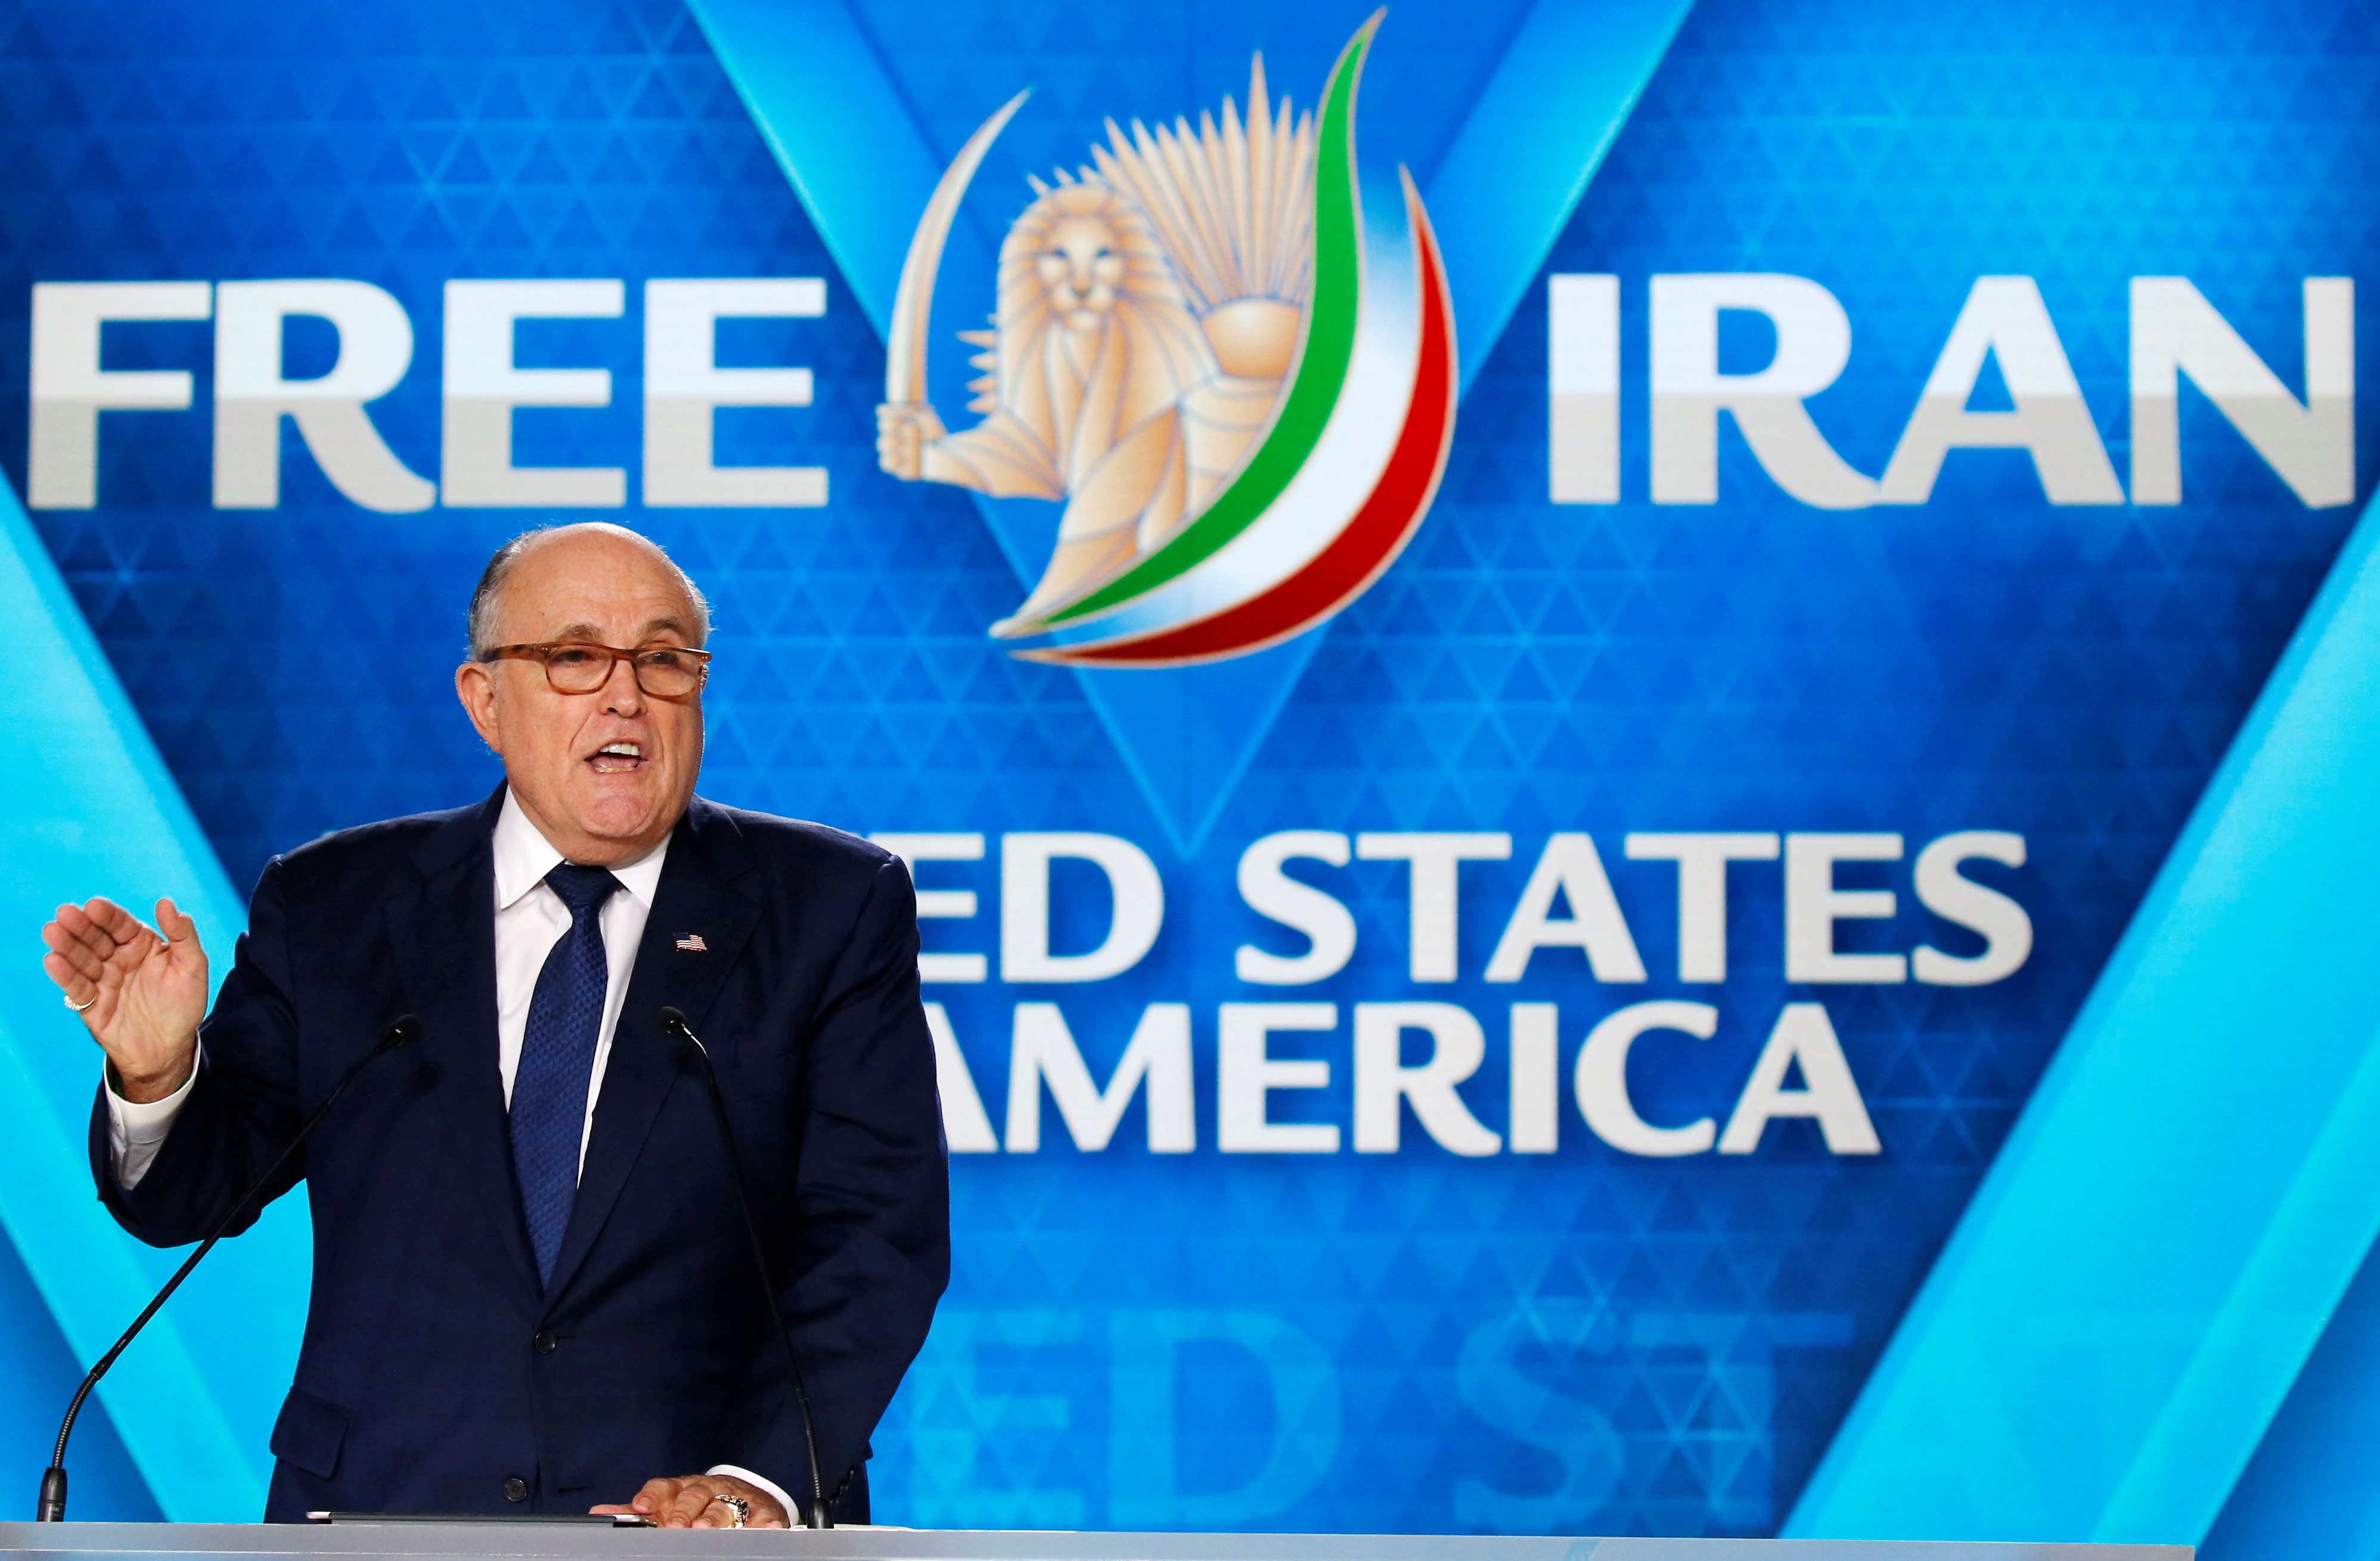 Rudy Giuliani, former Mayor of New York City, delivers his speech as he attends the National Council of Resistance of Iran (NCRI) near Paris, France, June 30, 2018 (REUTERS/REGIS DUVIGNAU)